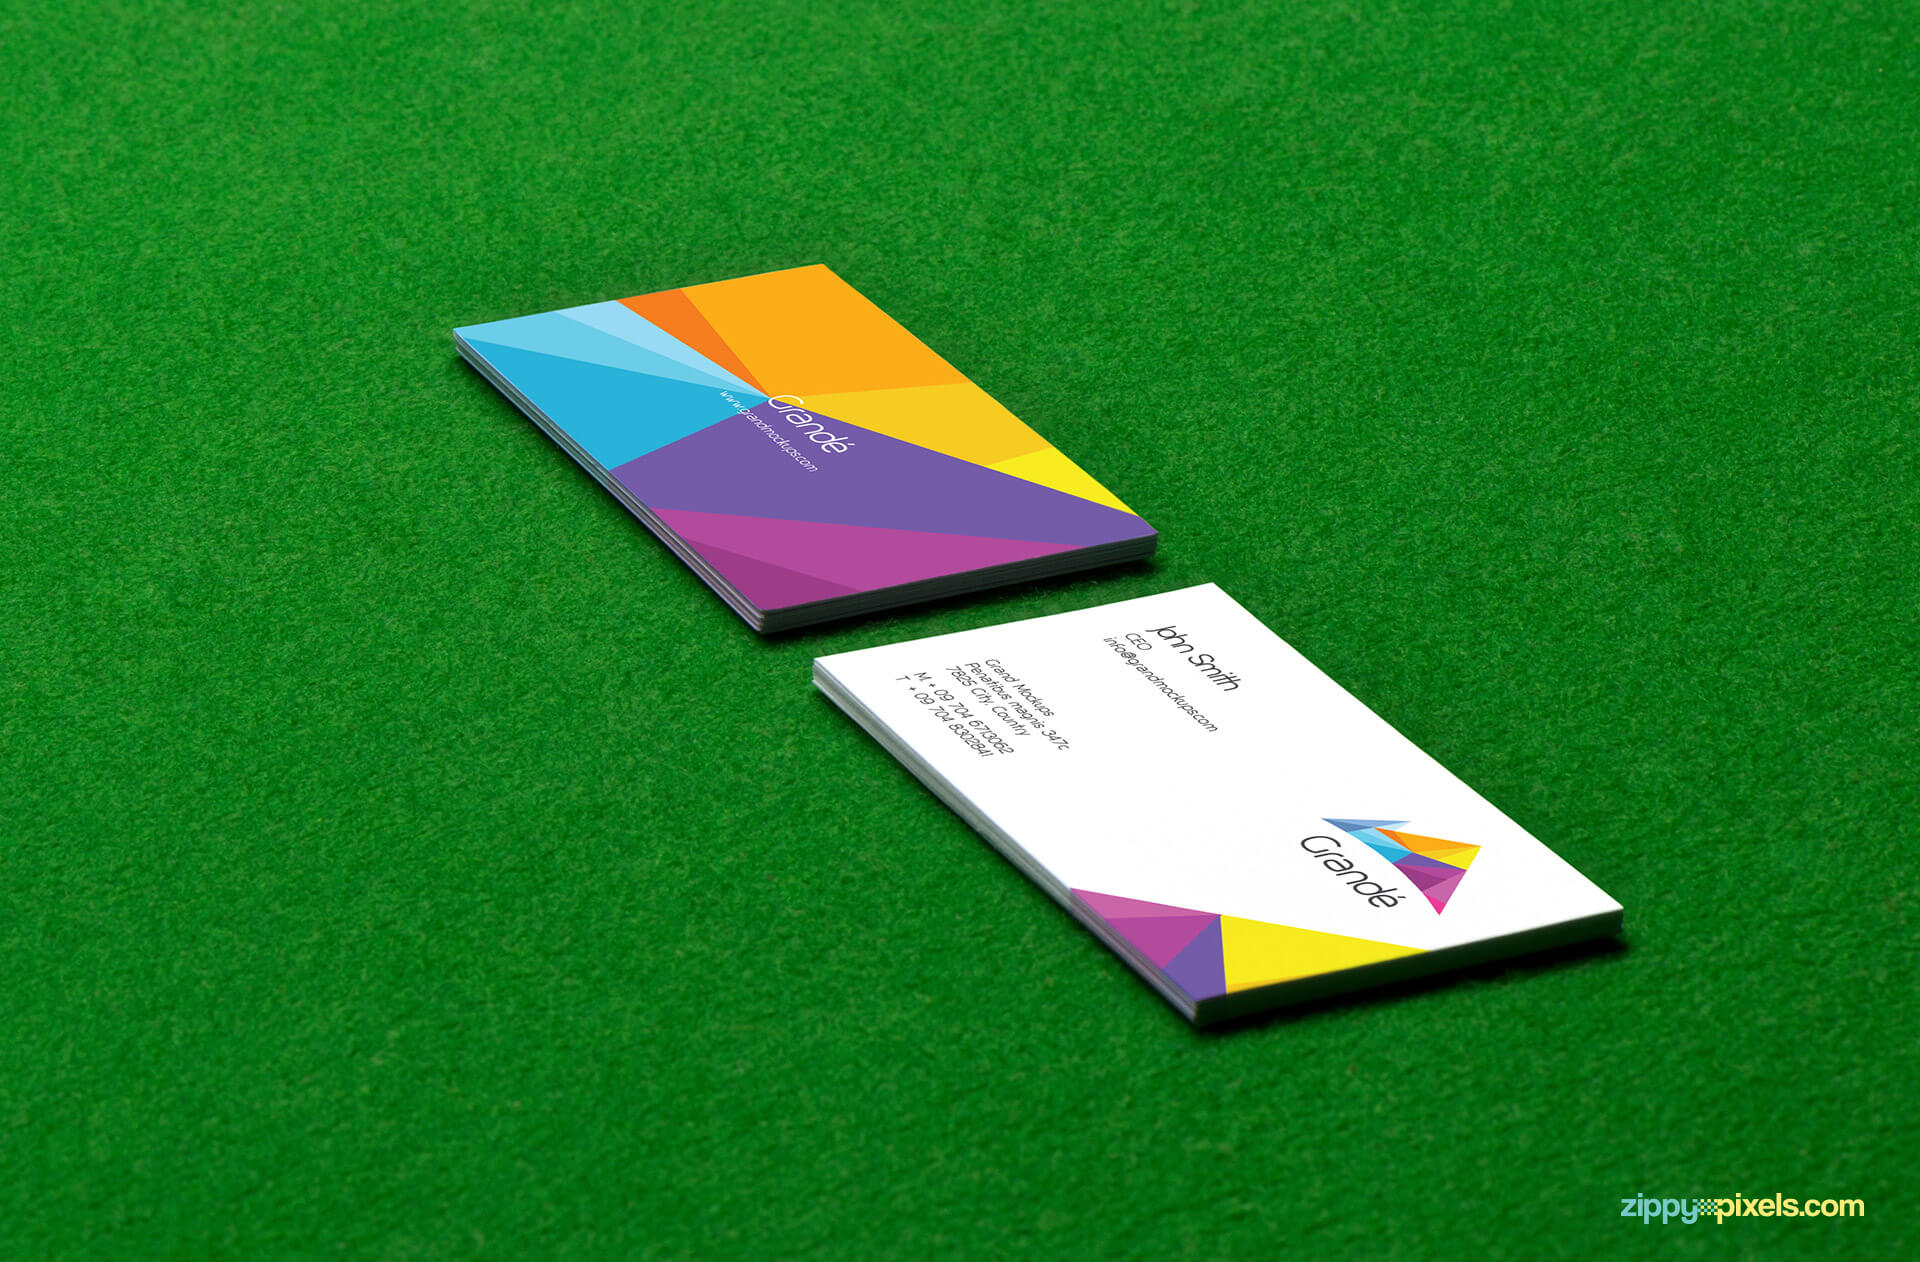 Mockup of Two Business Cards Stacks on Pool Table